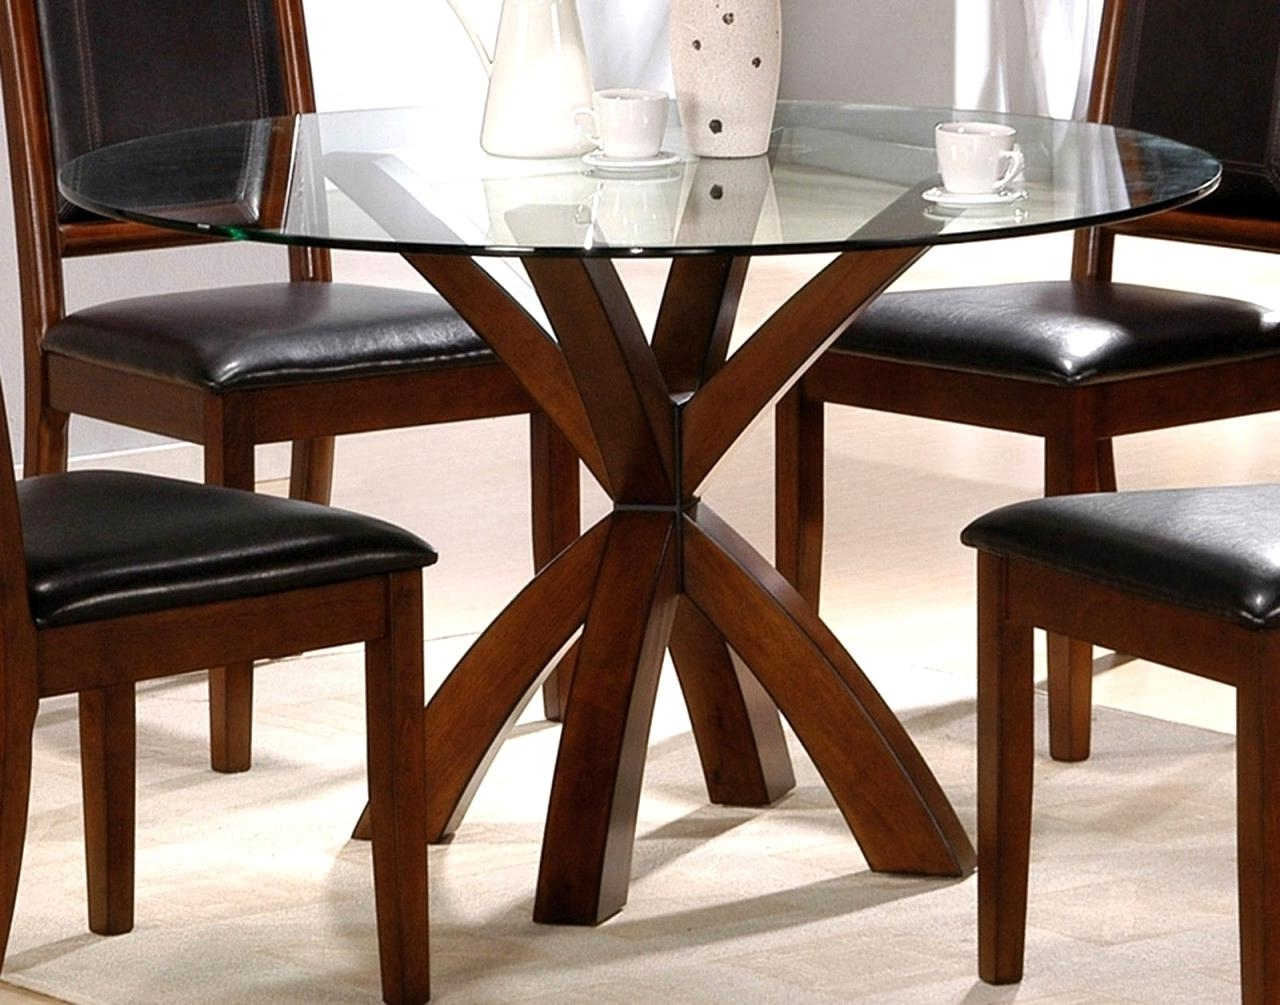 Incredible Oak Base Dining Table Simple Round Glass Top Dining With Popular Round Glass And Oak Dining Tables (View 16 of 25)